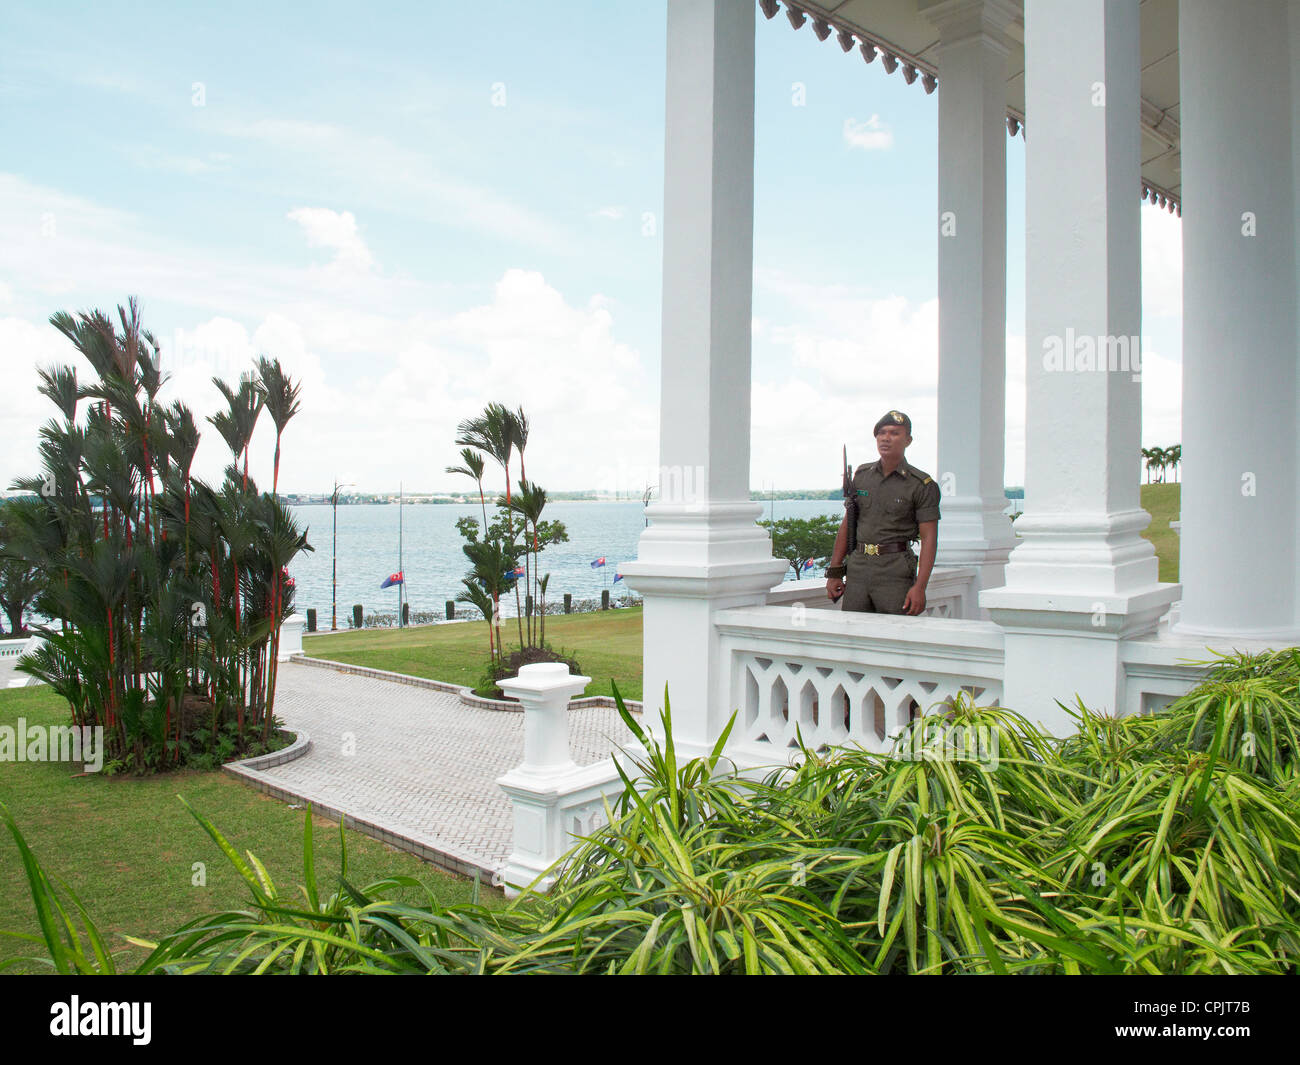 A security guard stands monitoring the courtyard at The Royal Sultan Abu Bakar Museum - Stock Image